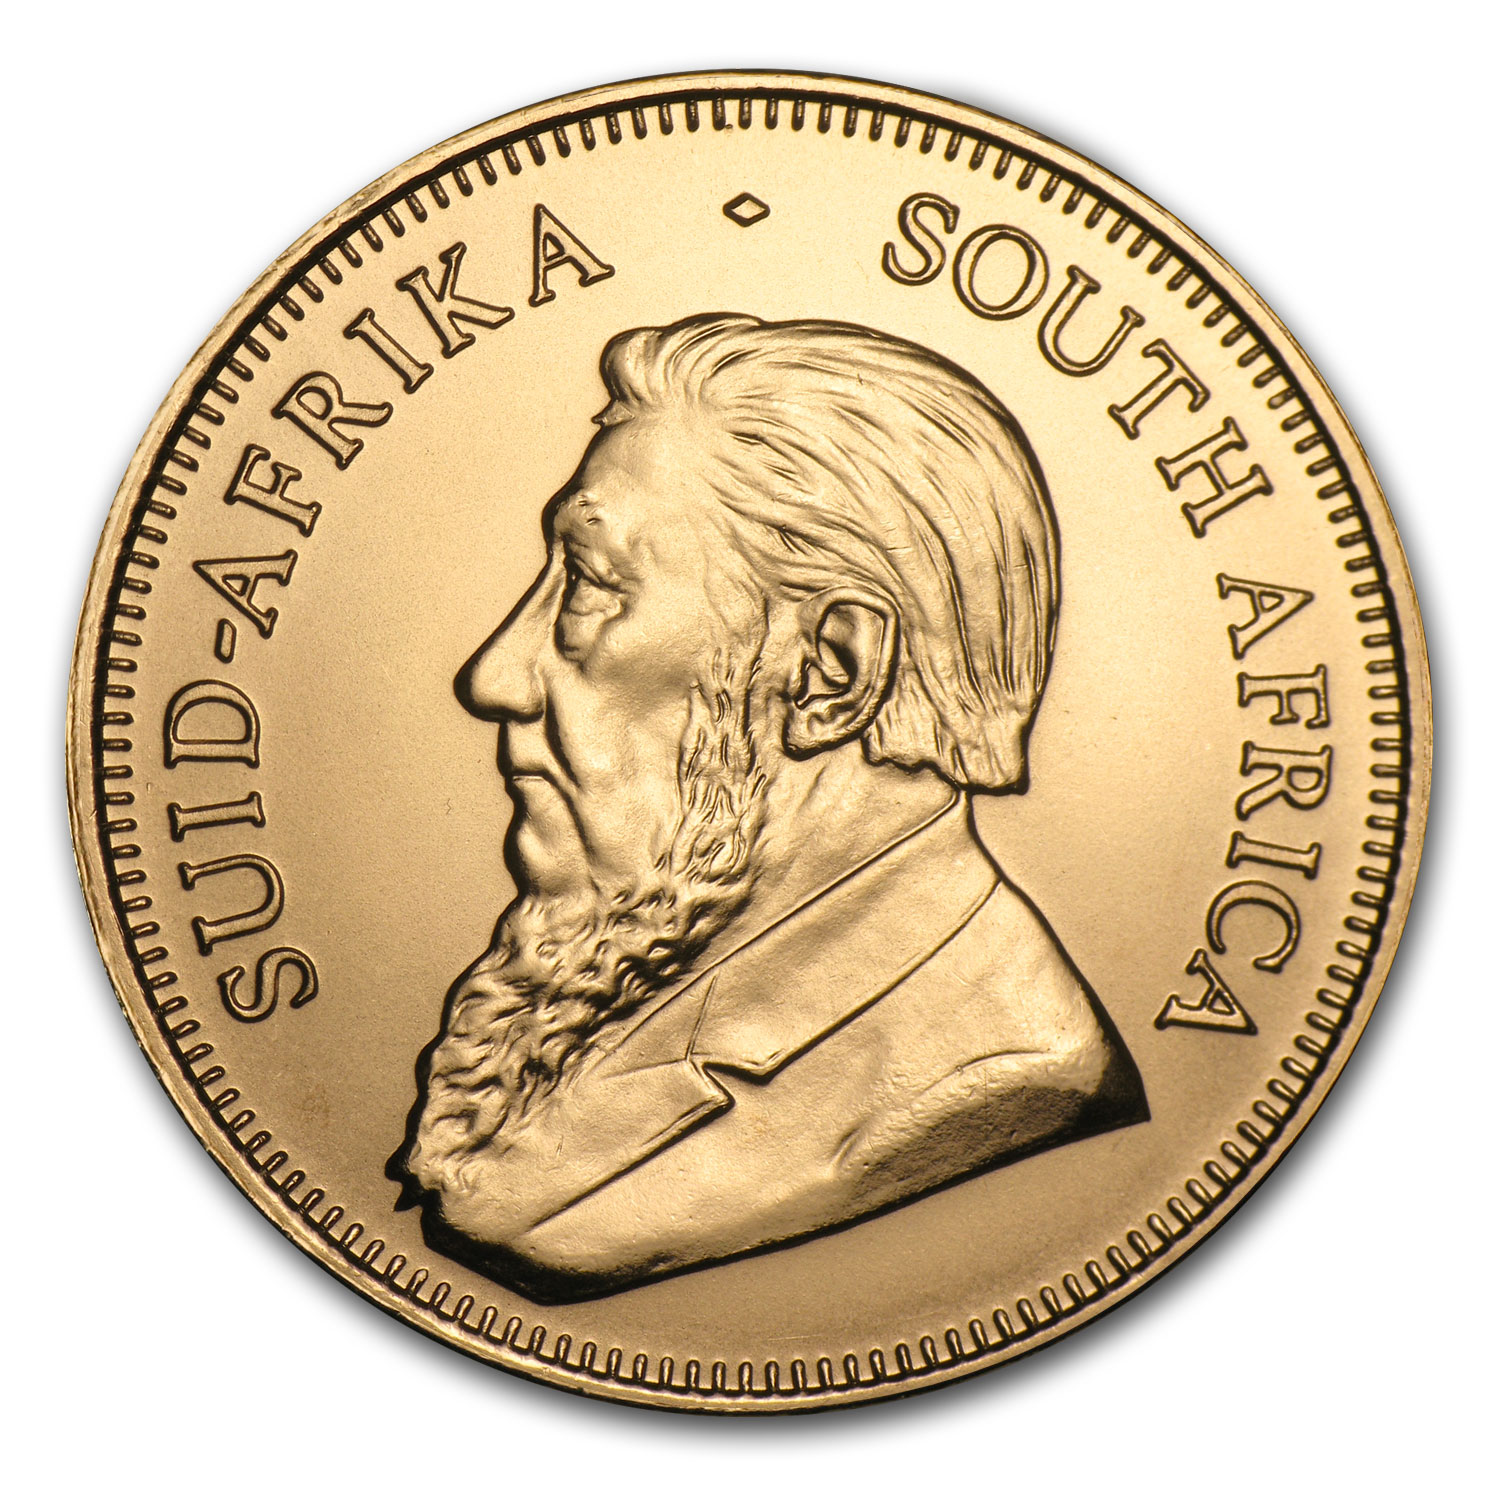 2014 South Africa 1/4 oz Gold Krugerrand